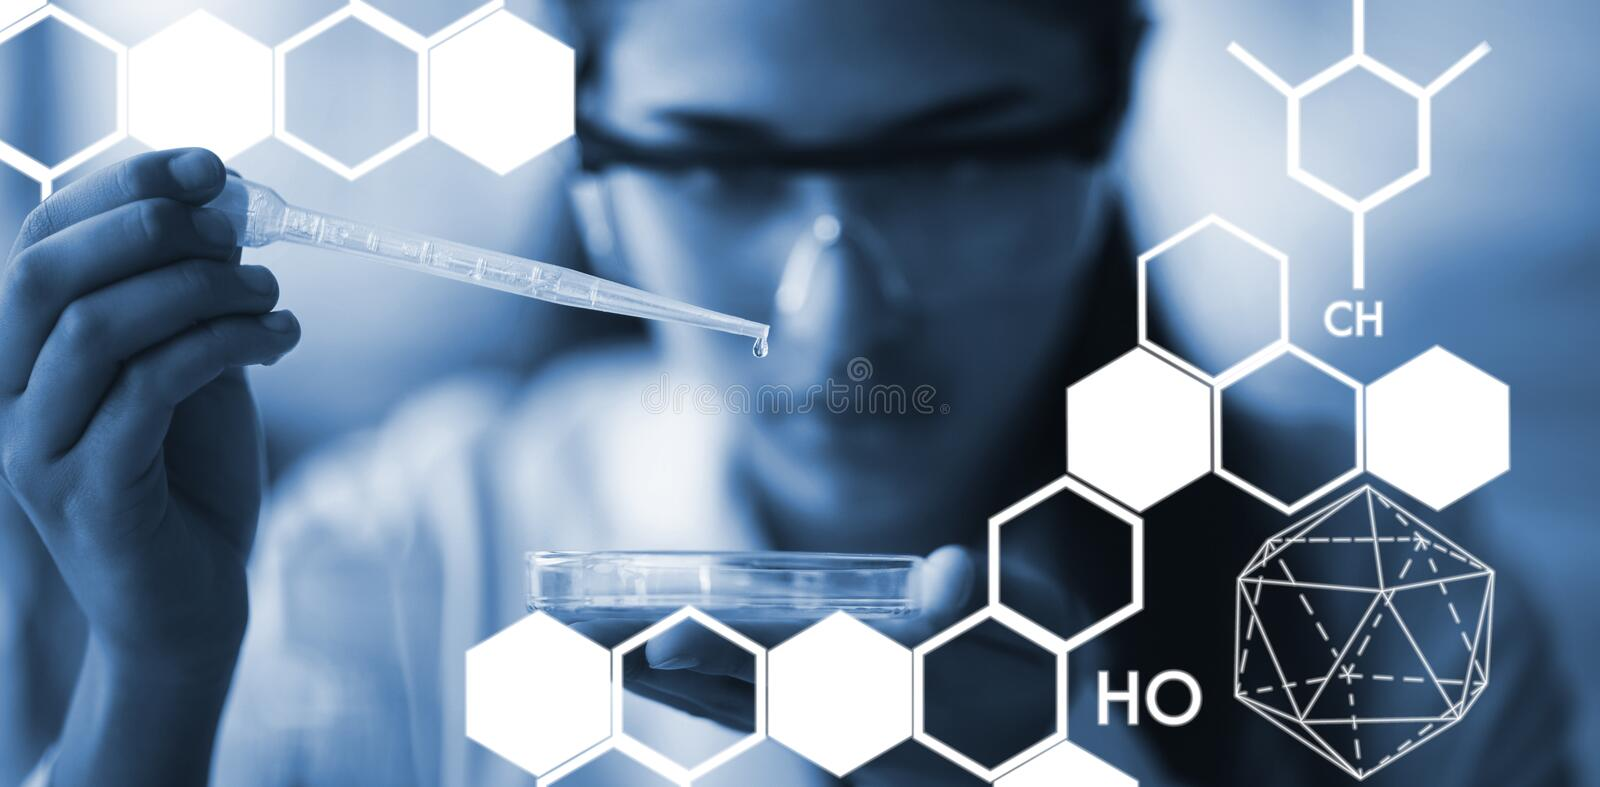 Composite image of graphic image of chemical structure. Graphic image of chemical structure against attentive schoolgirl experimenting in laboratory royalty free illustration